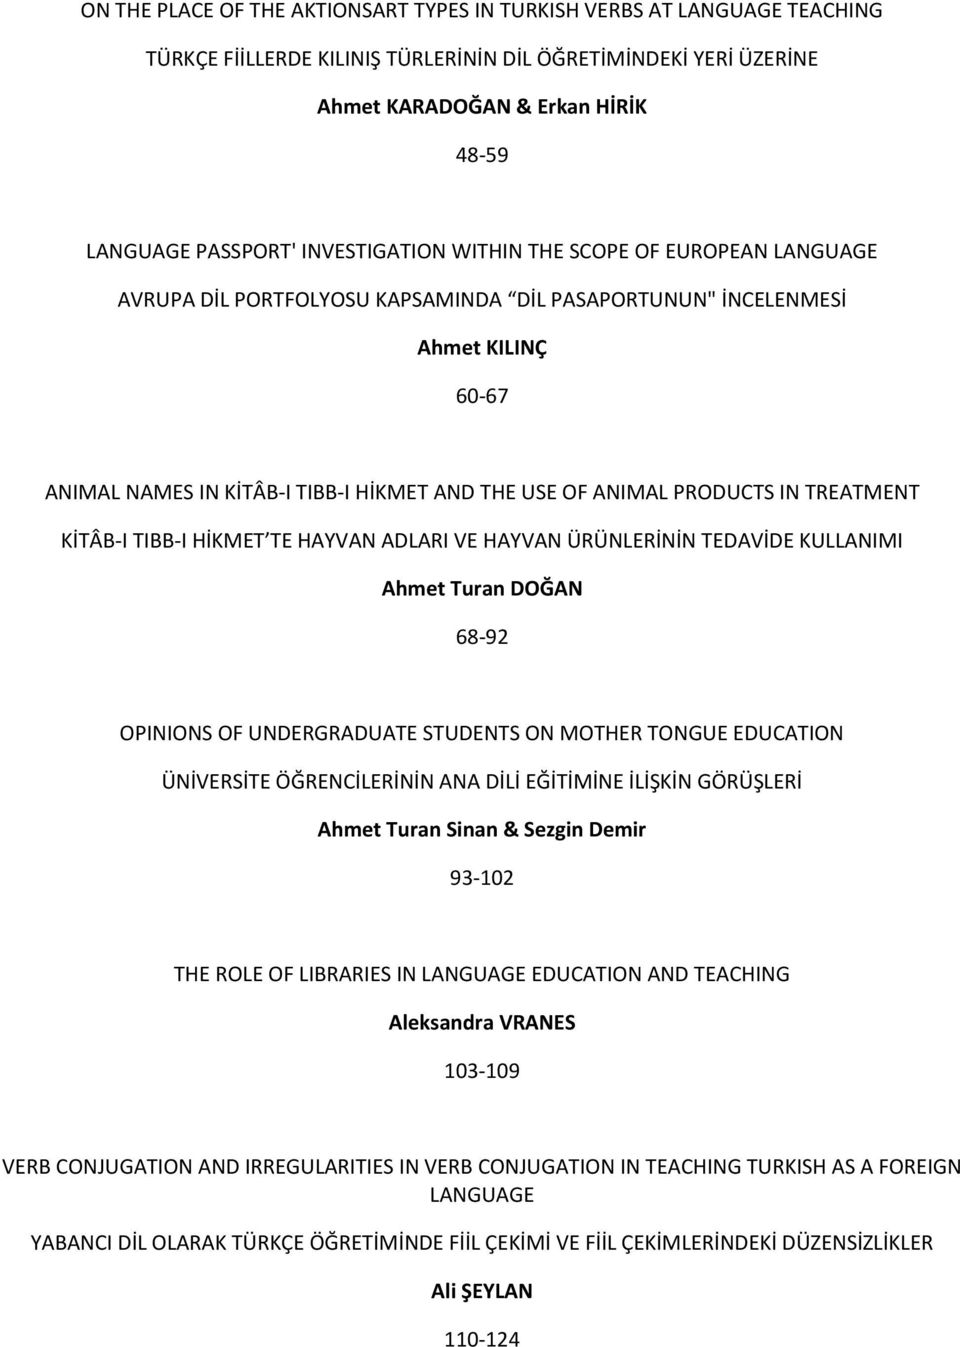 PRODUCTS IN TREATMENT KİTÂB-I TIBB-I HİKMET TE HAYVAN ADLARI VE HAYVAN ÜRÜNLERİNİN TEDAVİDE KULLANIMI Ahmet Turan DOĞAN 68-92 OPINIONS OF UNDERGRADUATE STUDENTS ON MOTHER TONGUE EDUCATION ÜNİVERSİTE